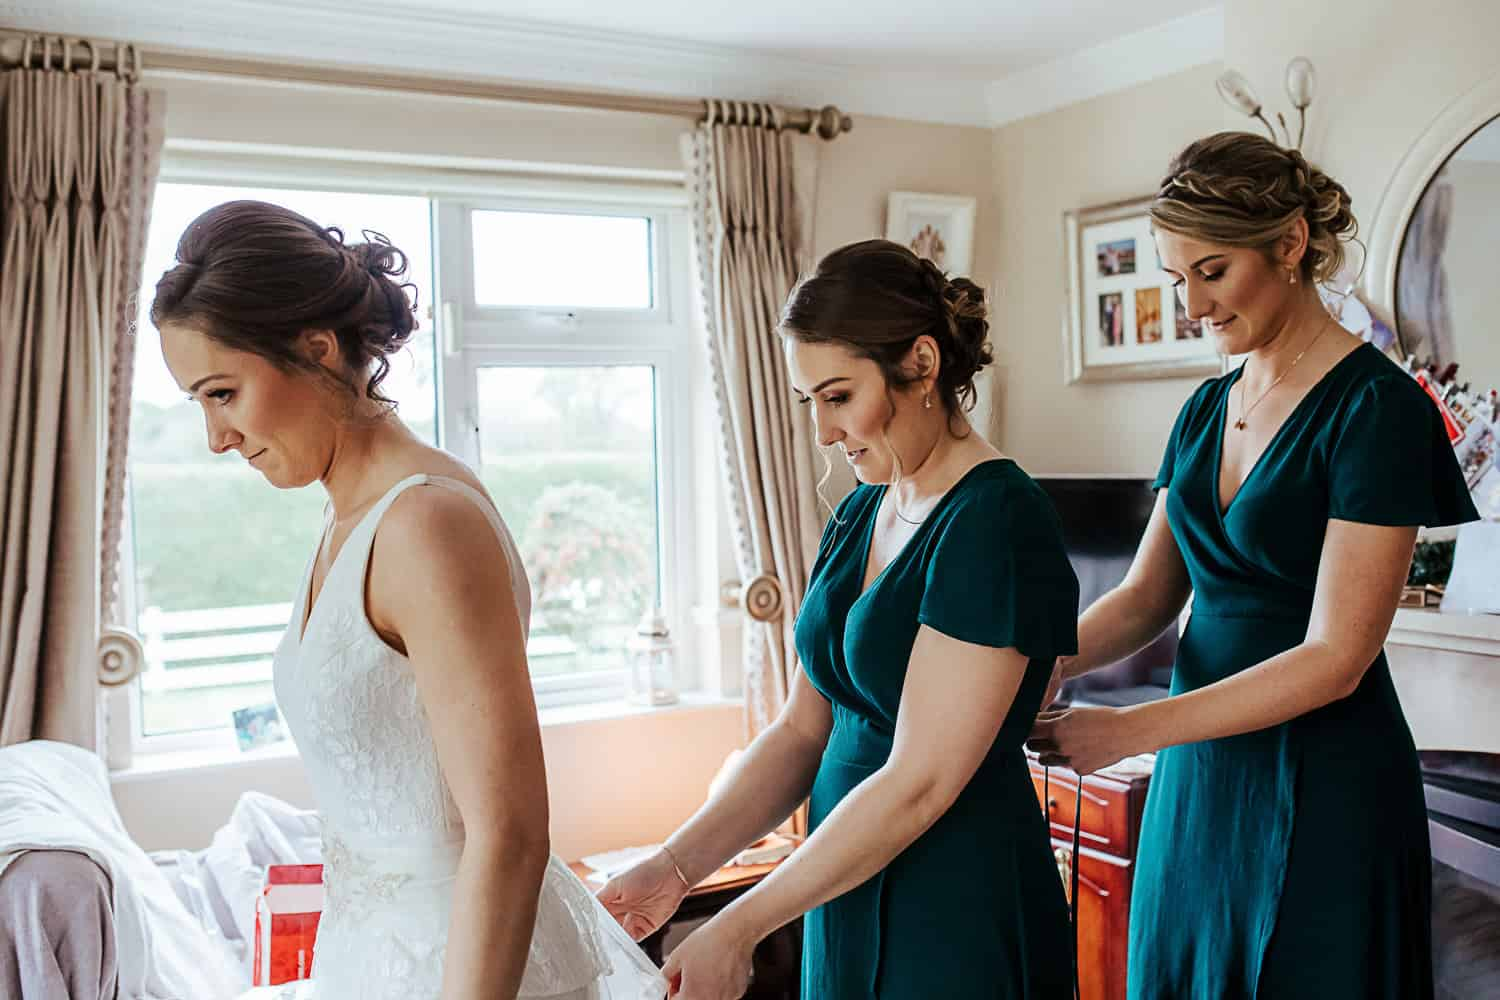 bridesmaids helping bride get into her wedding dress